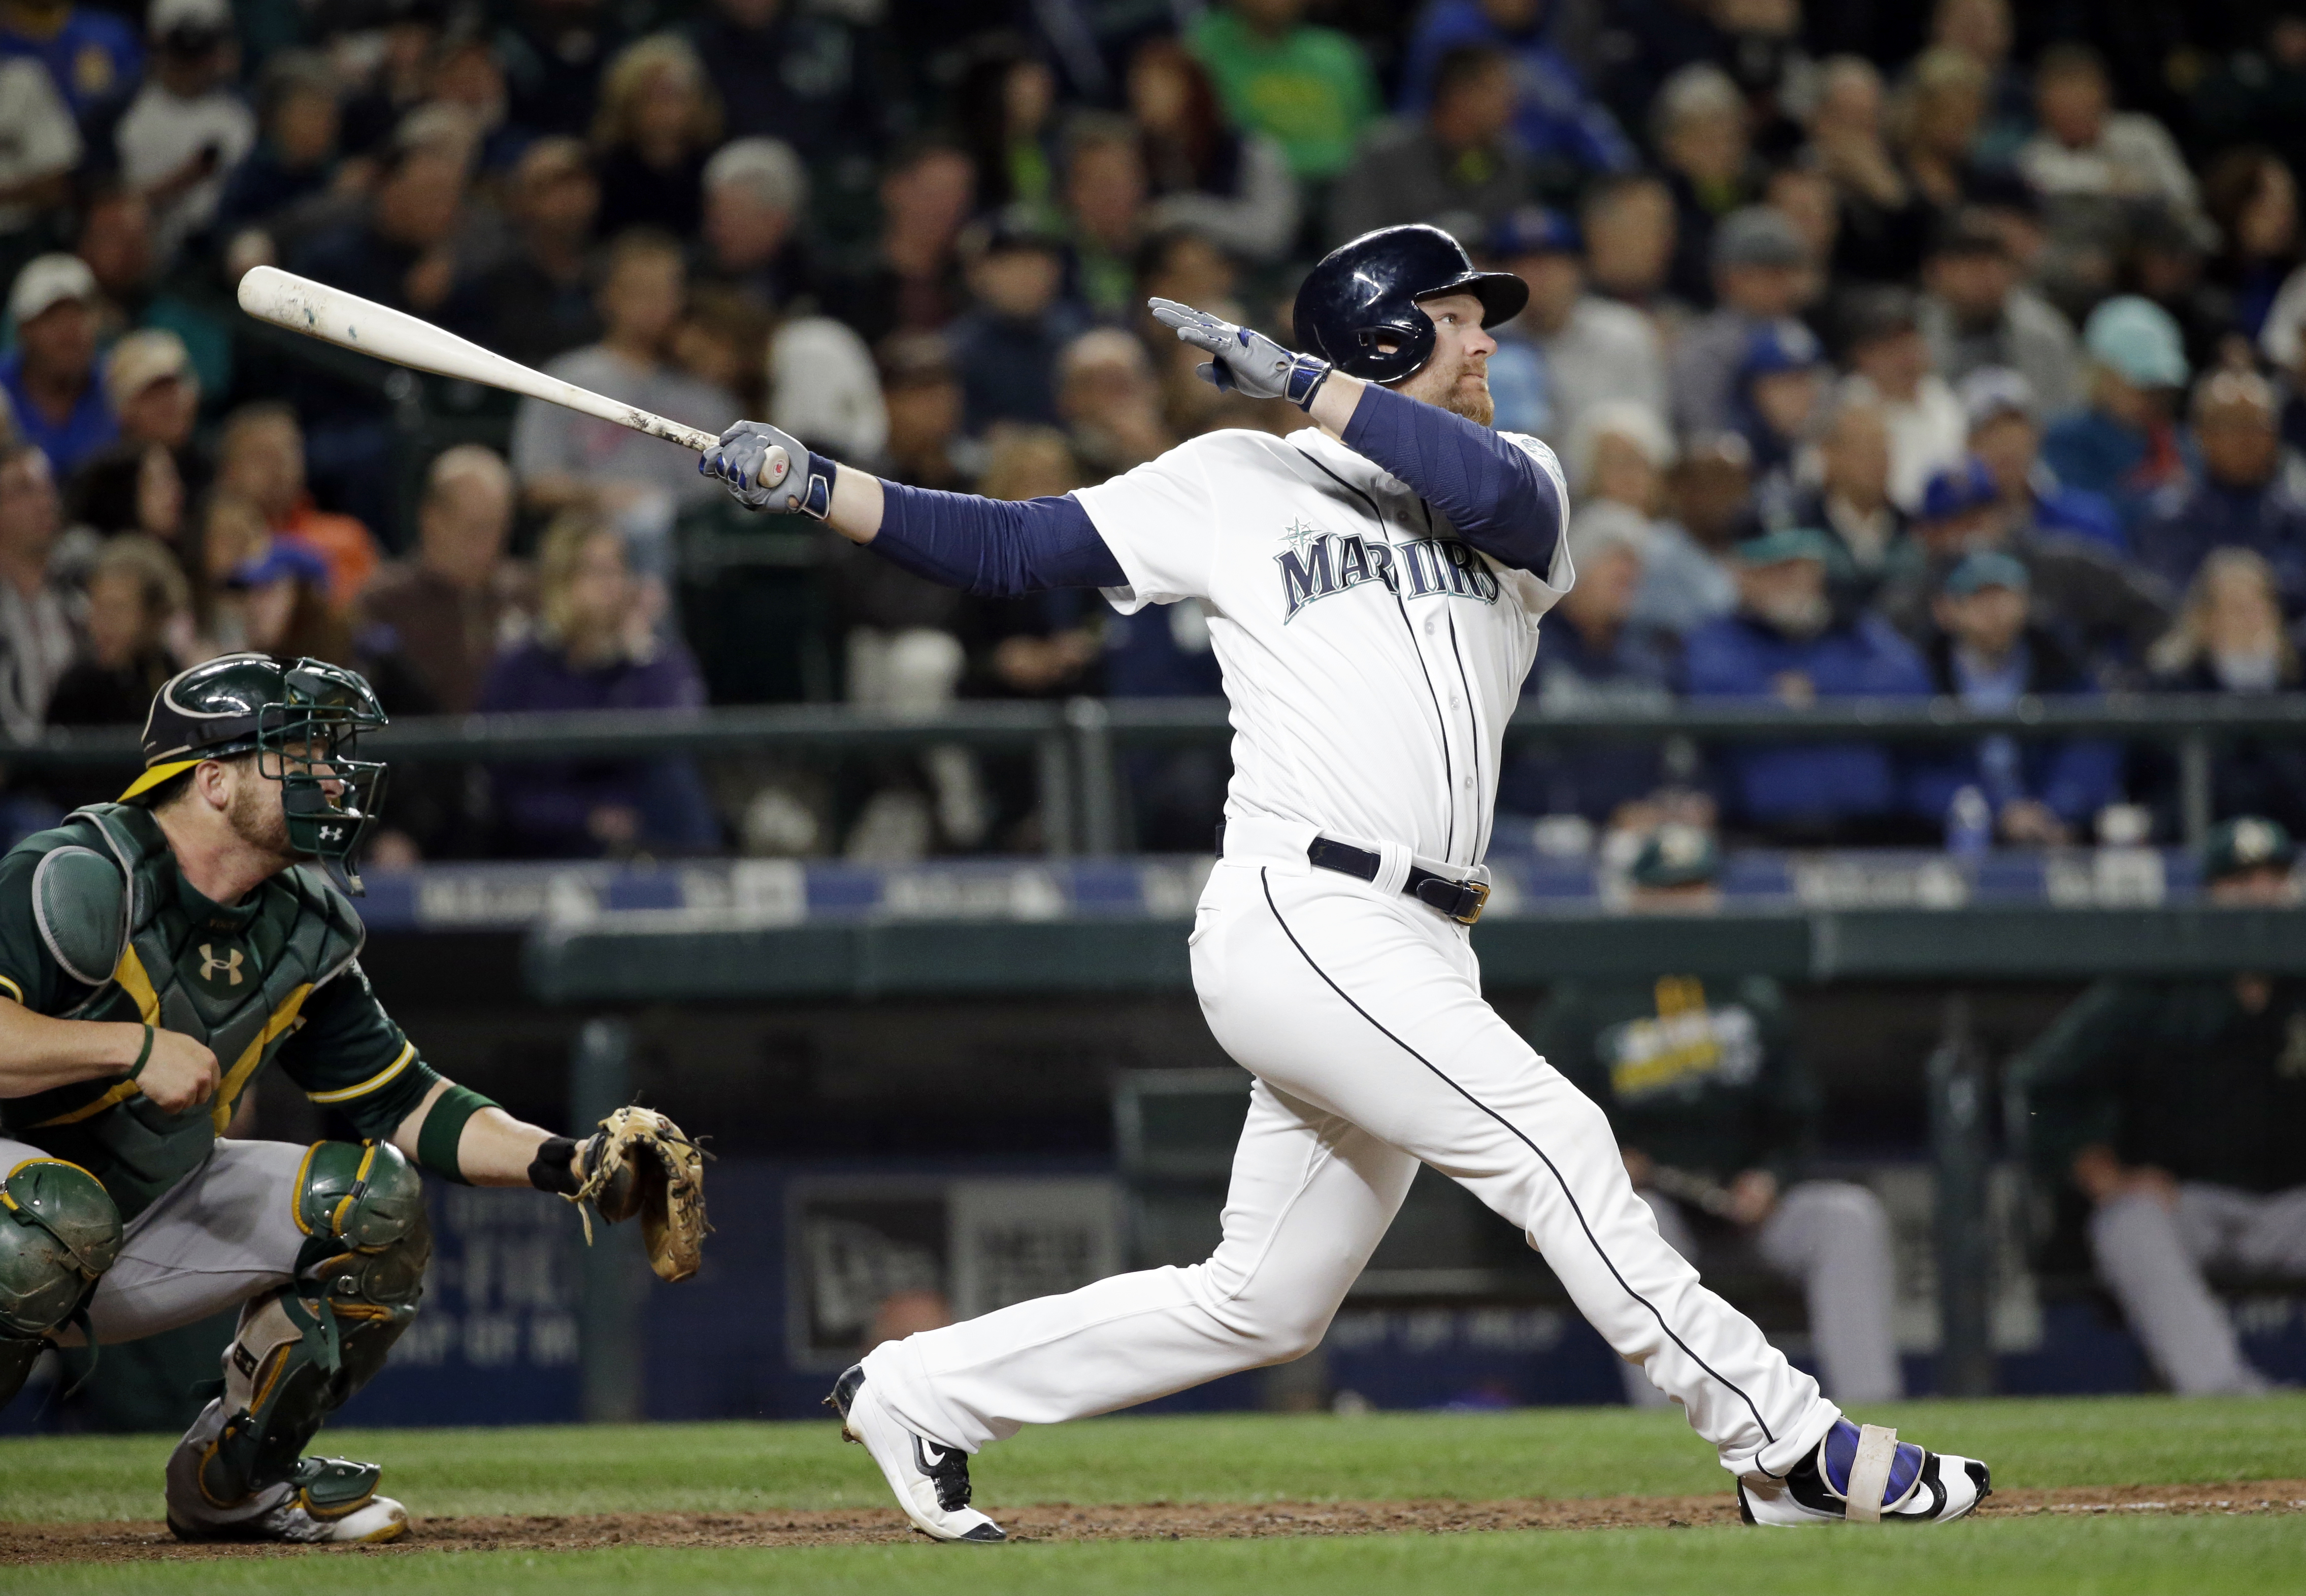 Seattle Mariners' Adam Lind follows through on a double in front of Oakland Athletics catcher Stephen Vogt during the seventh inning of a baseball game Wednesday, May 25, 2016, in Seattle. (AP Photo/Elaine Thompson)